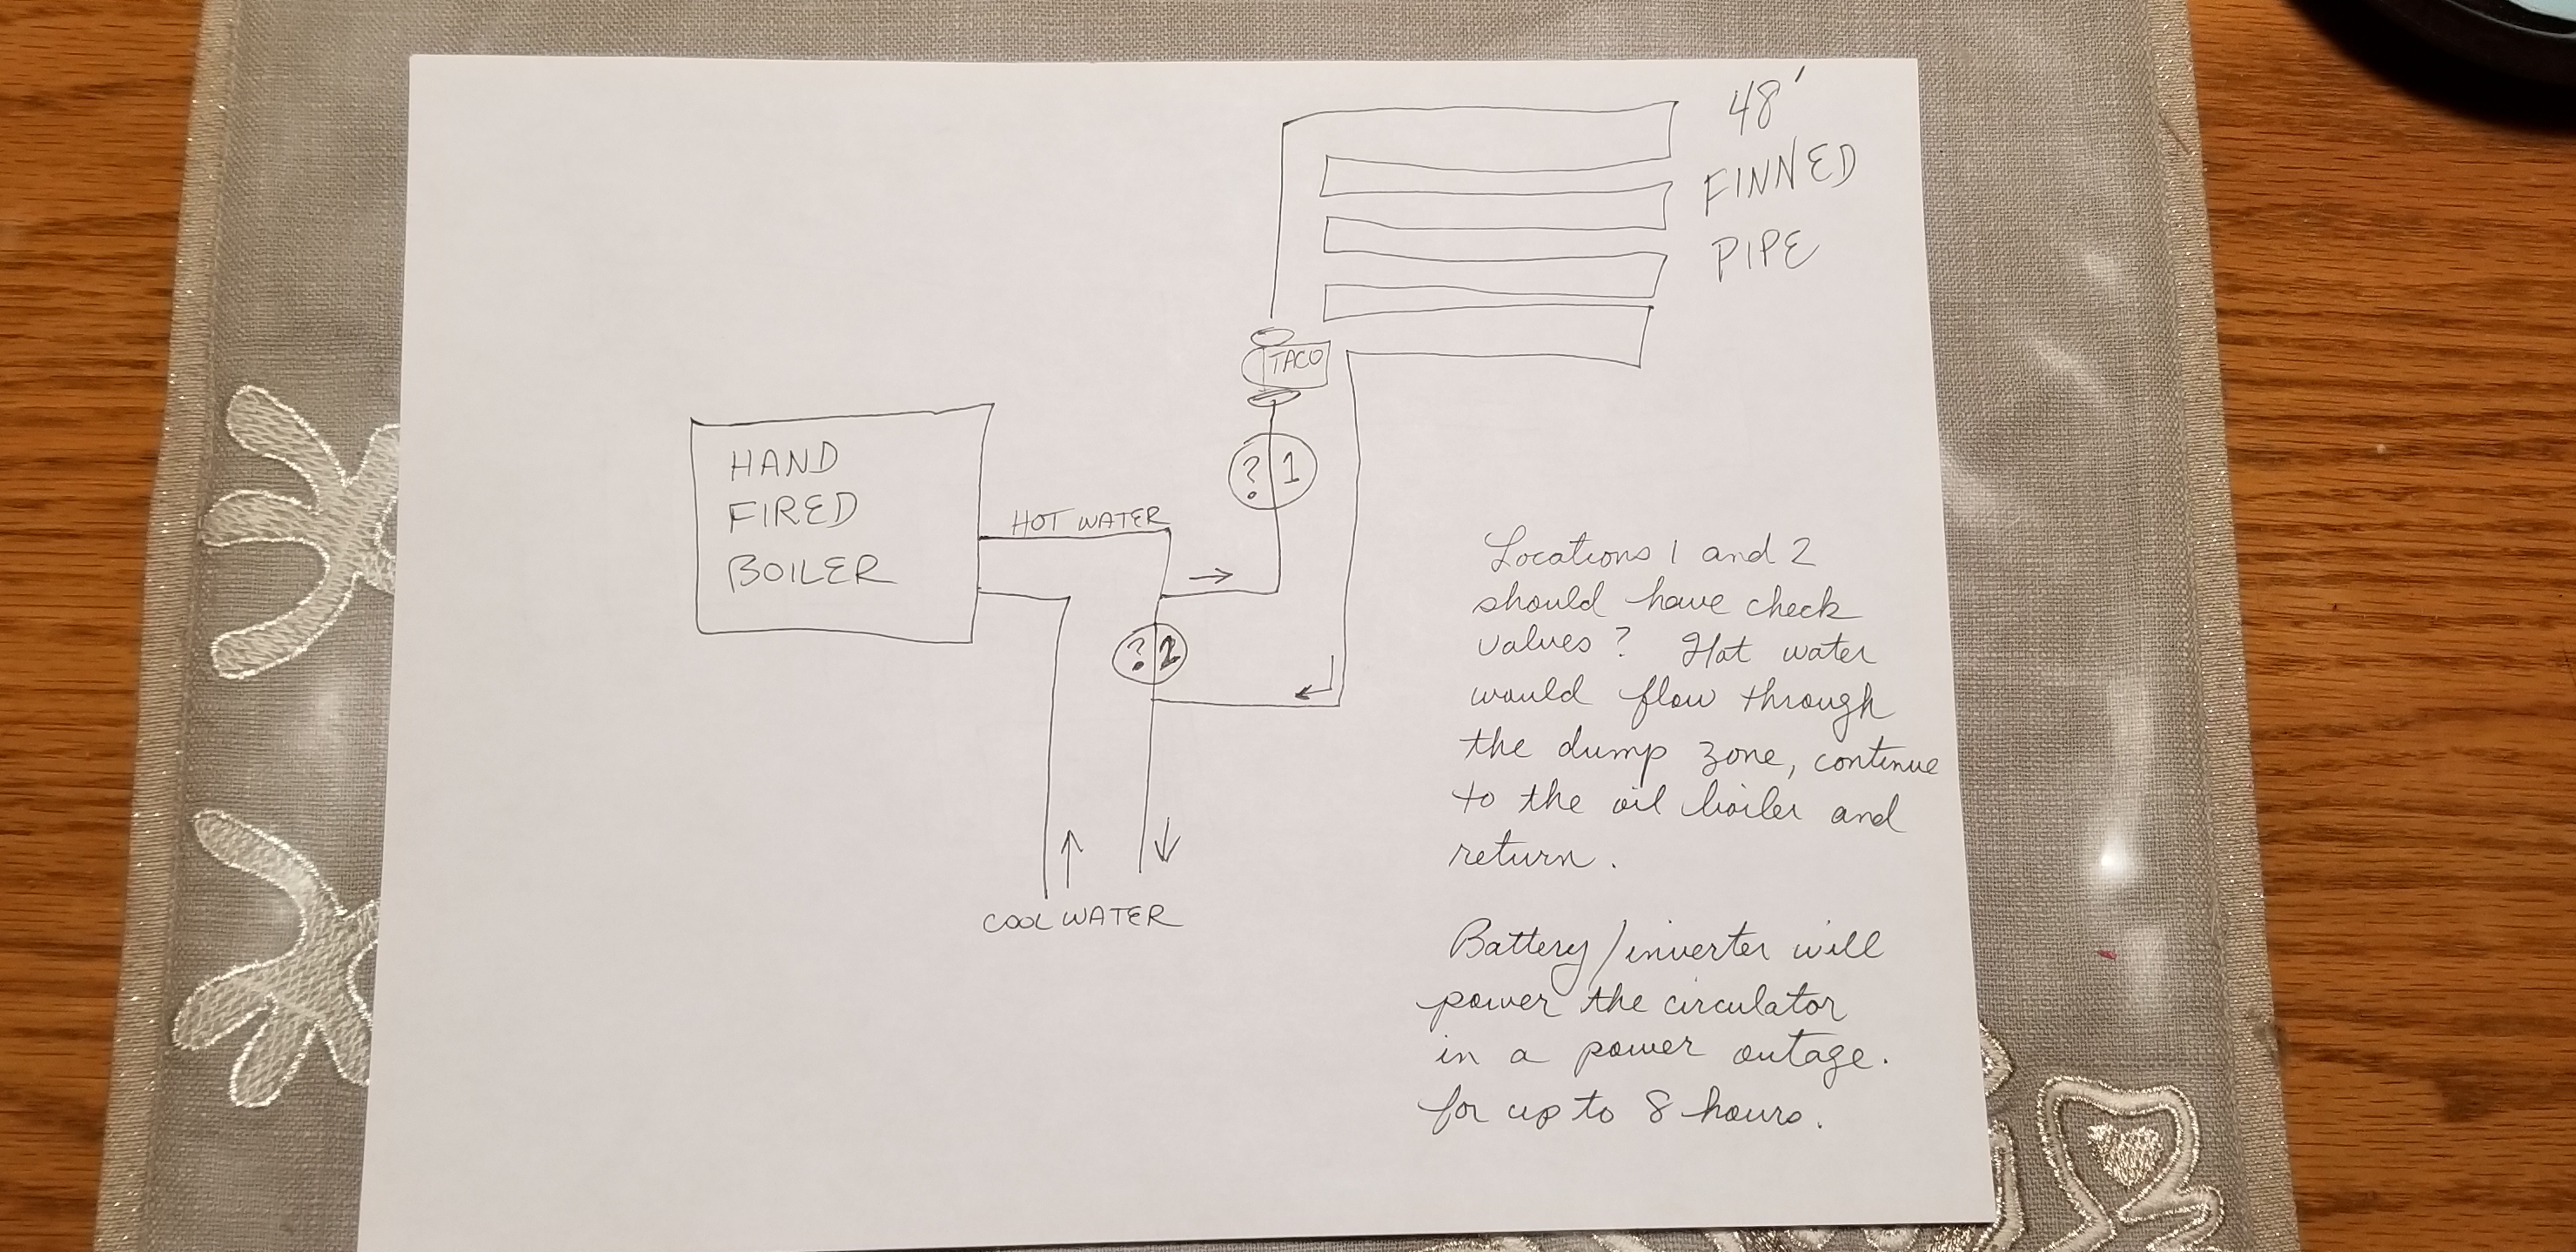 Creating a functioning dump zone for a hand-fired boiler — Heating on oil burner fuel pump, stove wiring diagram, oil burner fuse, turbine wind generator wiring diagram, oil burner ignition system, oil burner sensor, old furnace wiring diagram, oil burner capacitor, coleman furnace wiring diagram, oil burner manuals, oil burner engine, oil burner wire harness, mobile home furnace wiring diagram, electric wiring diagram, service wiring diagram, electrical wiring diagram, basic furnace wiring diagram, oil burner oil filter, heating wiring diagram, lights wiring diagram,